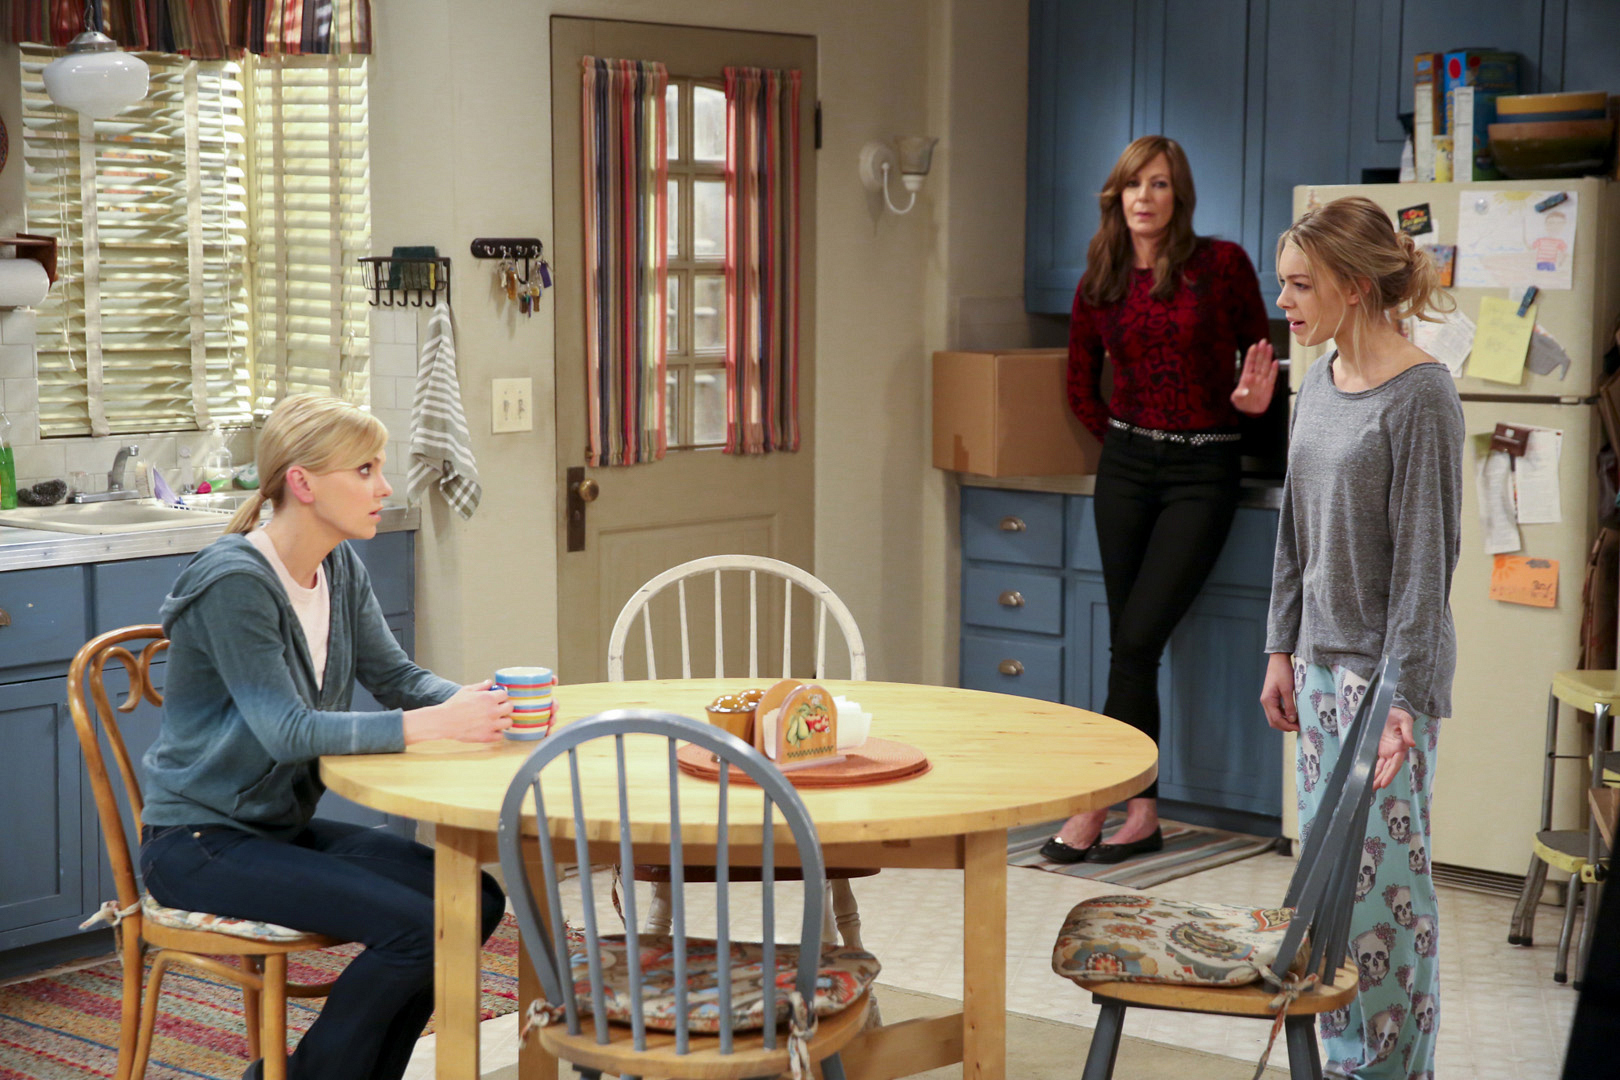 Violet is surprised when Phyllis tells Bonnie and Christy a different reason for the breakup.